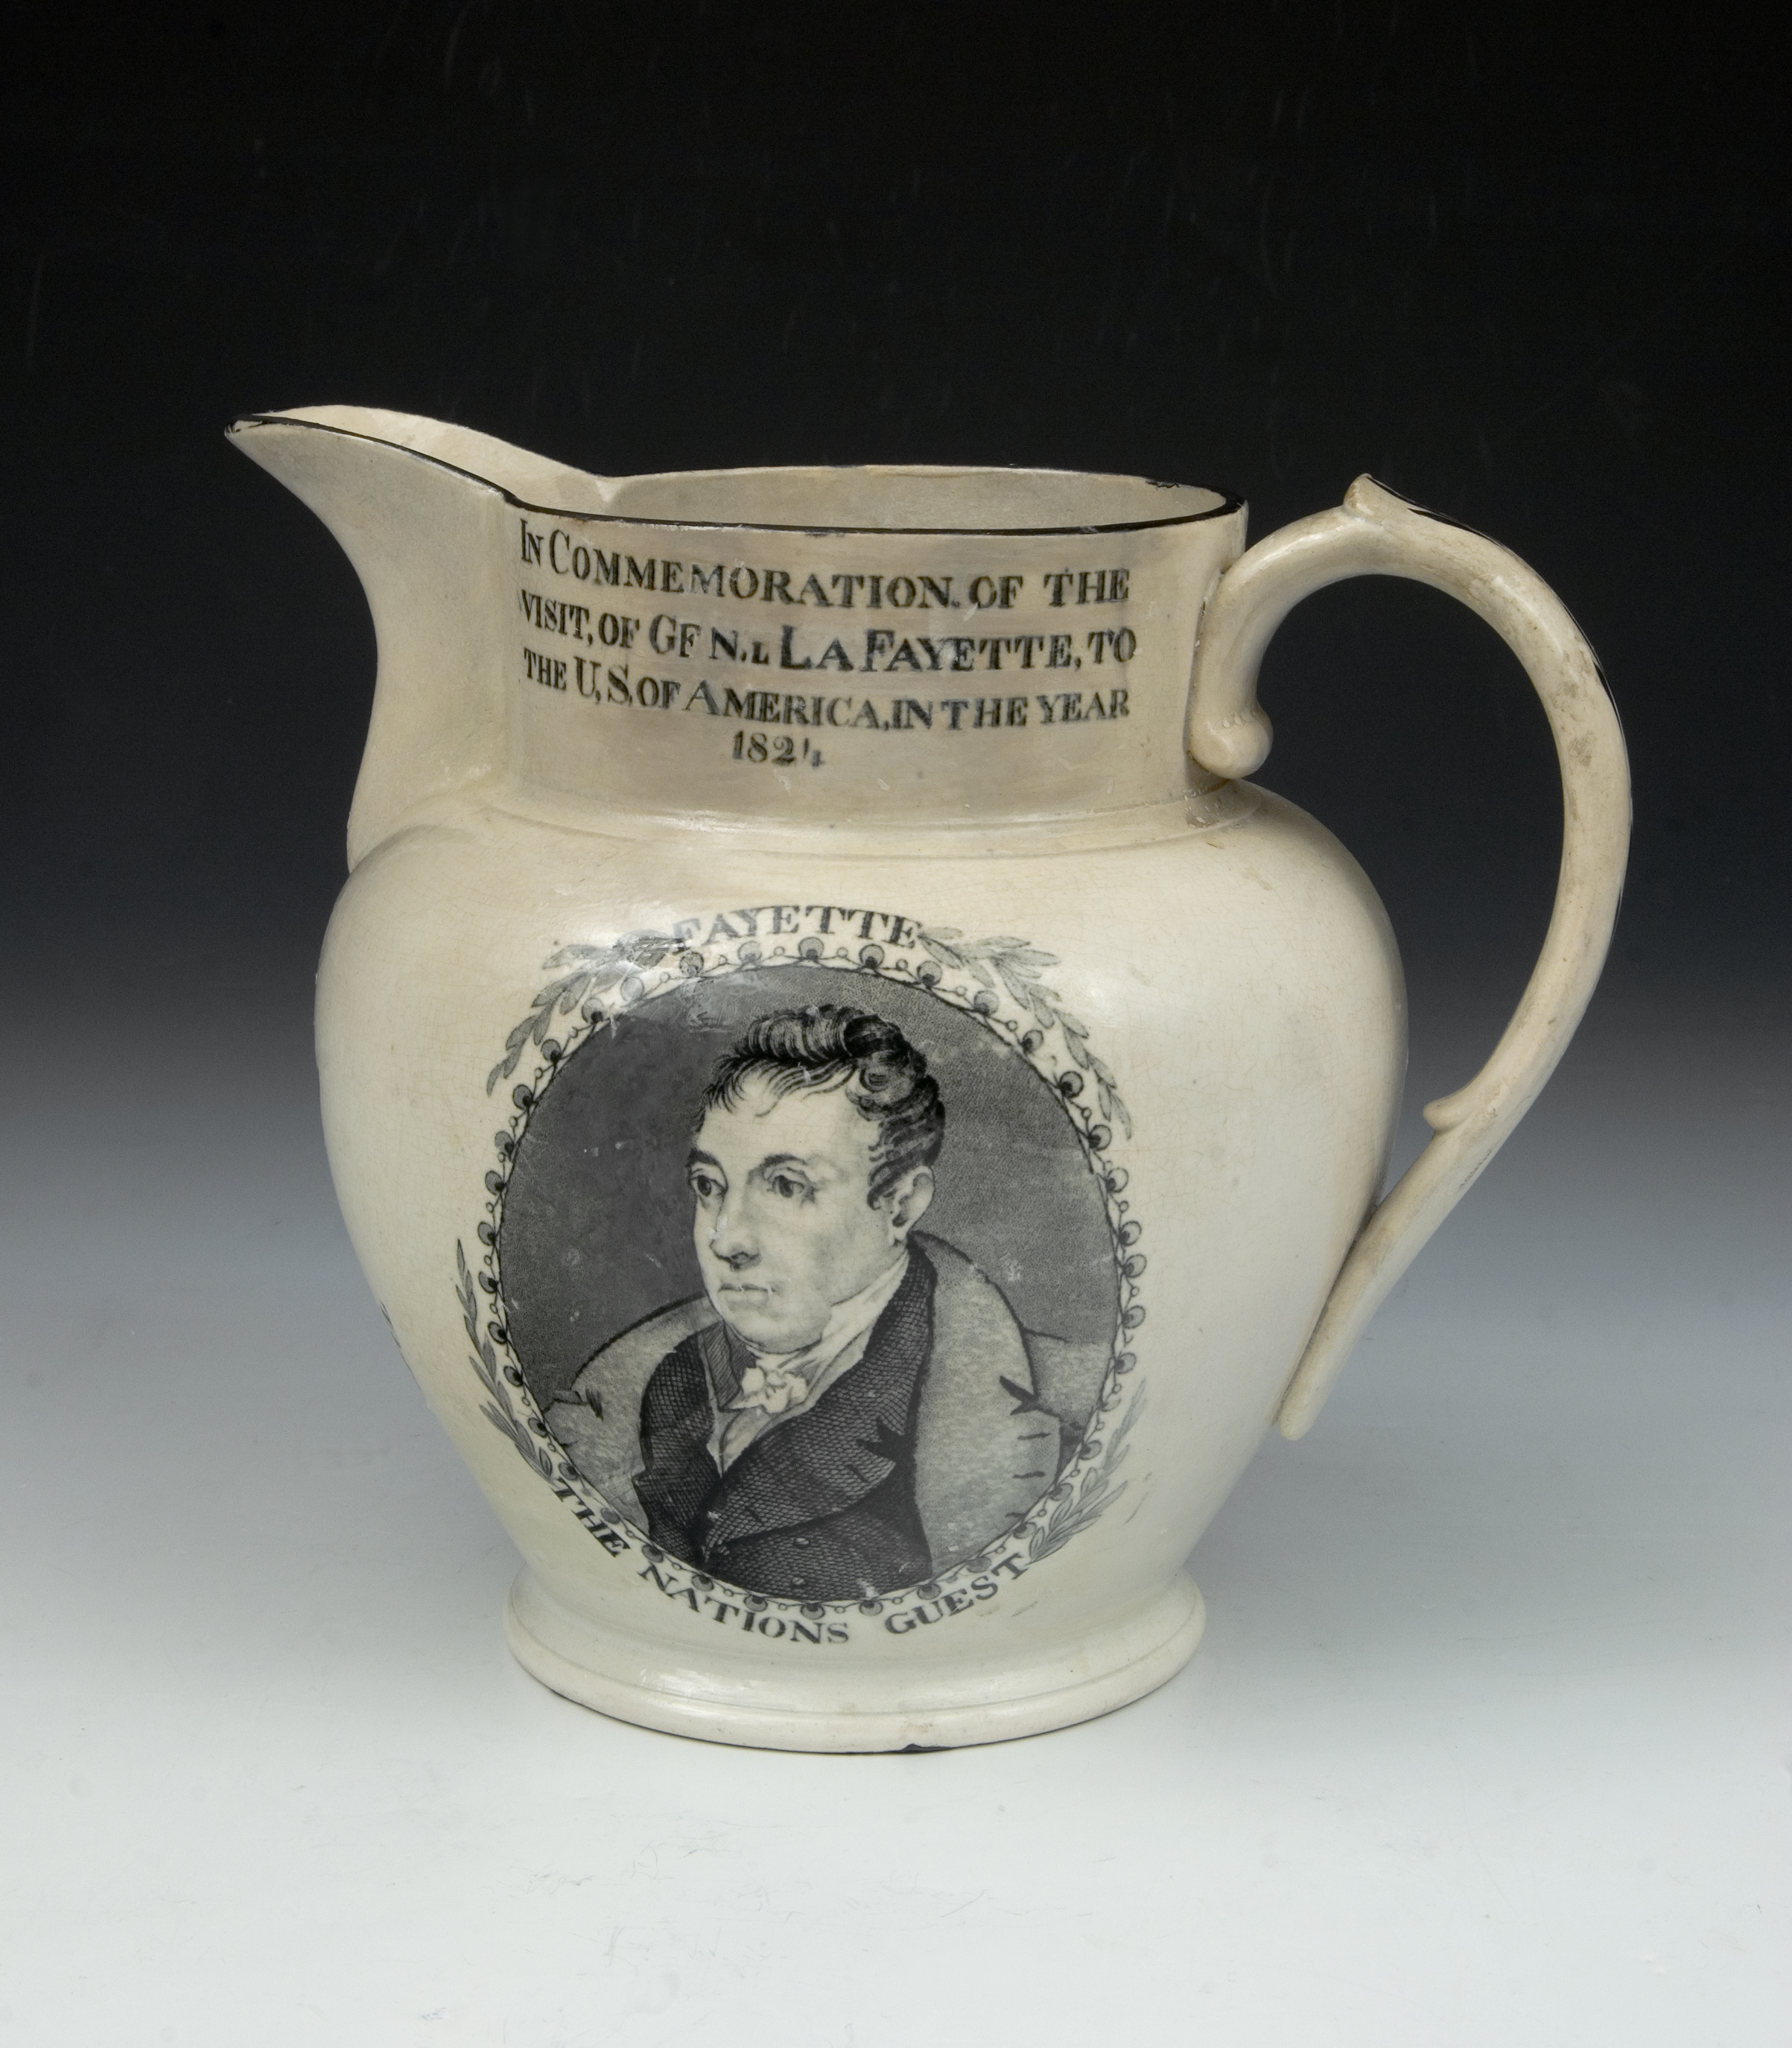 Jug commemorating the visit of the marquis de Lafayette to the U.S., ca. 1824